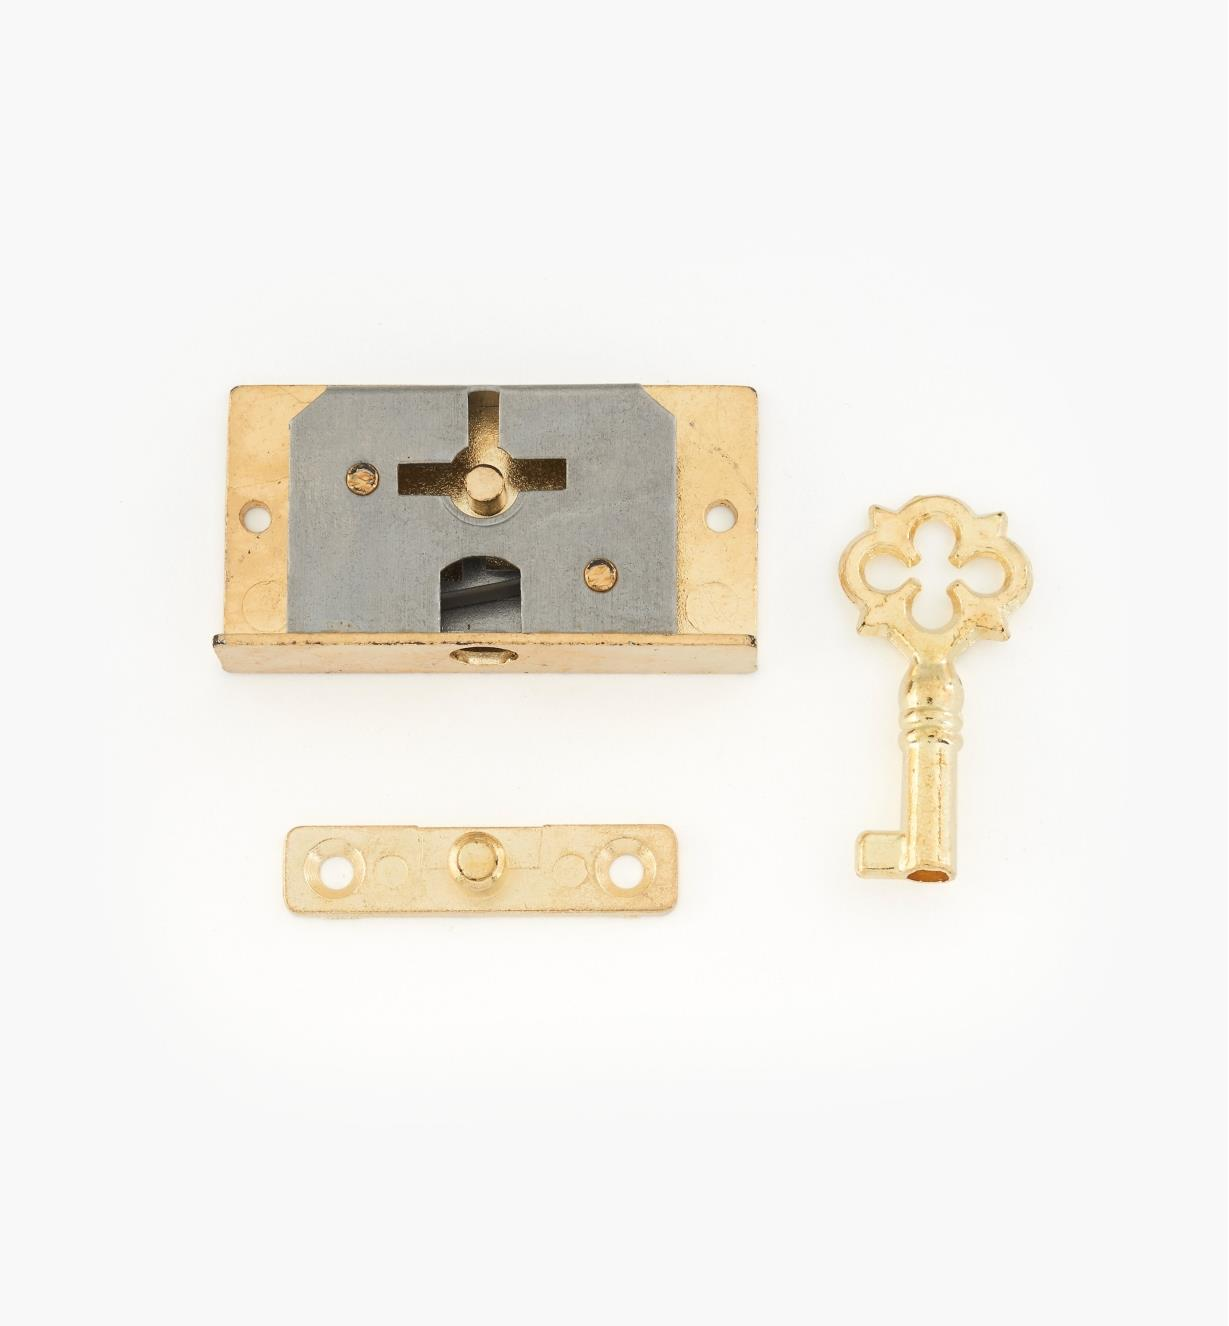 "00N3001 - 1 5/8"" Small Box Lock"